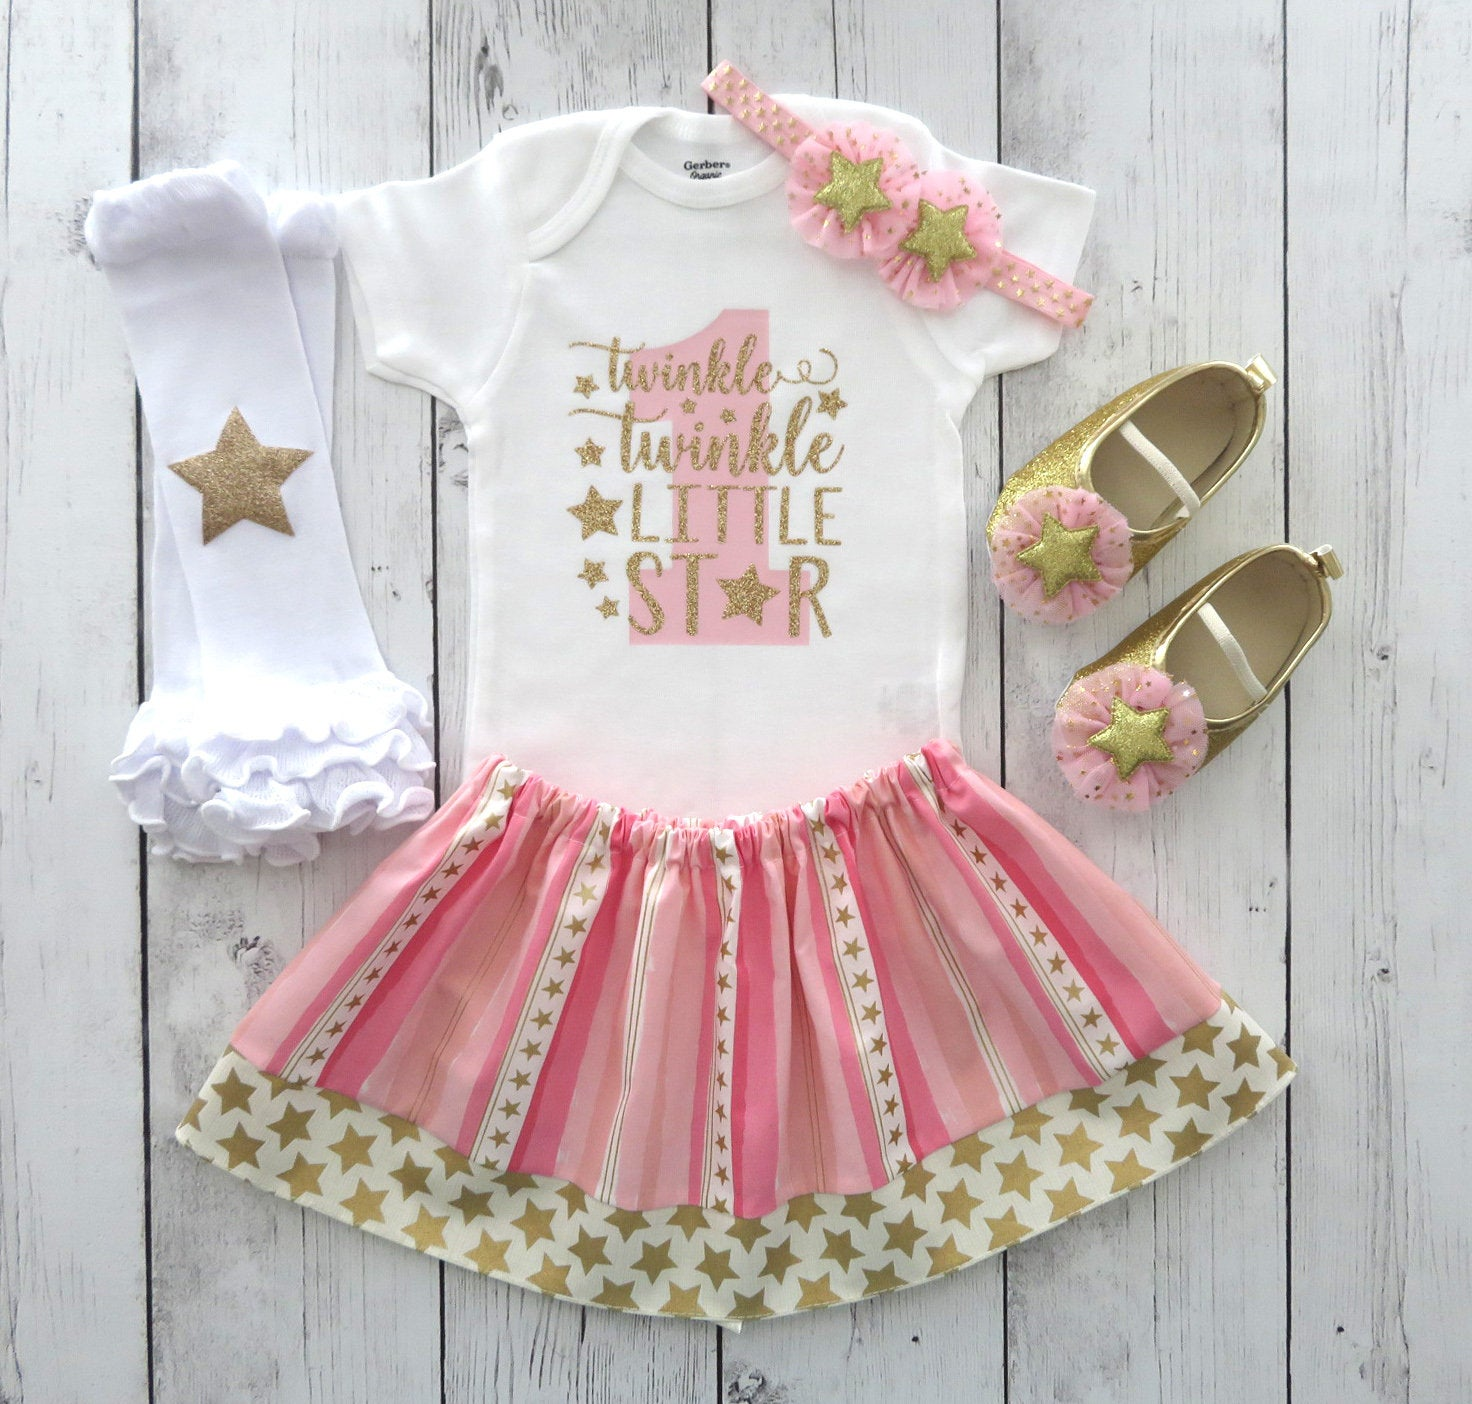 Twinkle Twinkle Little Star First Birthday Outfit in Pink and Gold - gold star shoes, 1st birthday girl pink and gold